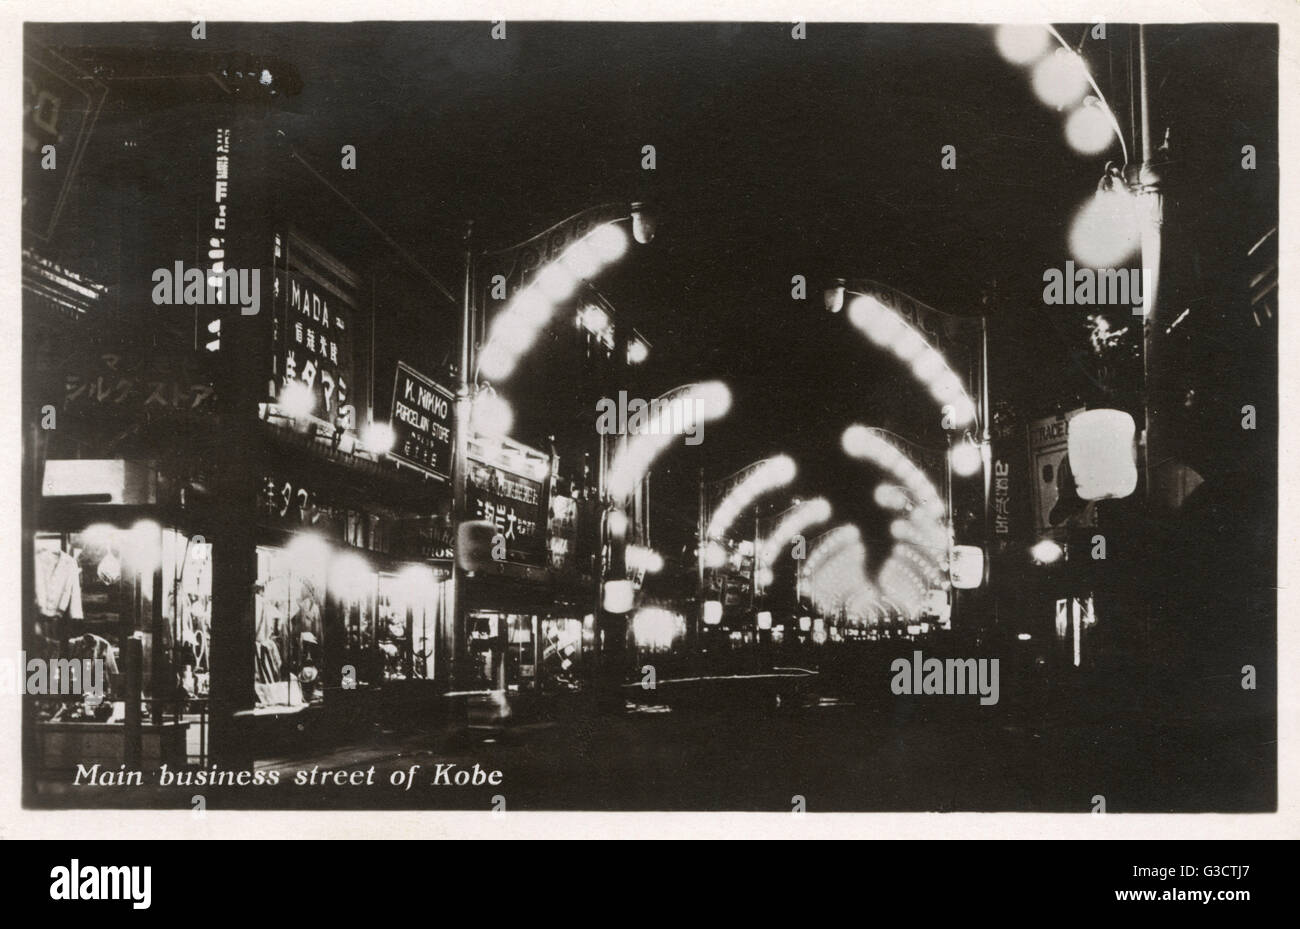 Kobe, Japan - Nightime view of the main business street showing attractive arrays of street lighting     Date: 1935 - Stock Image